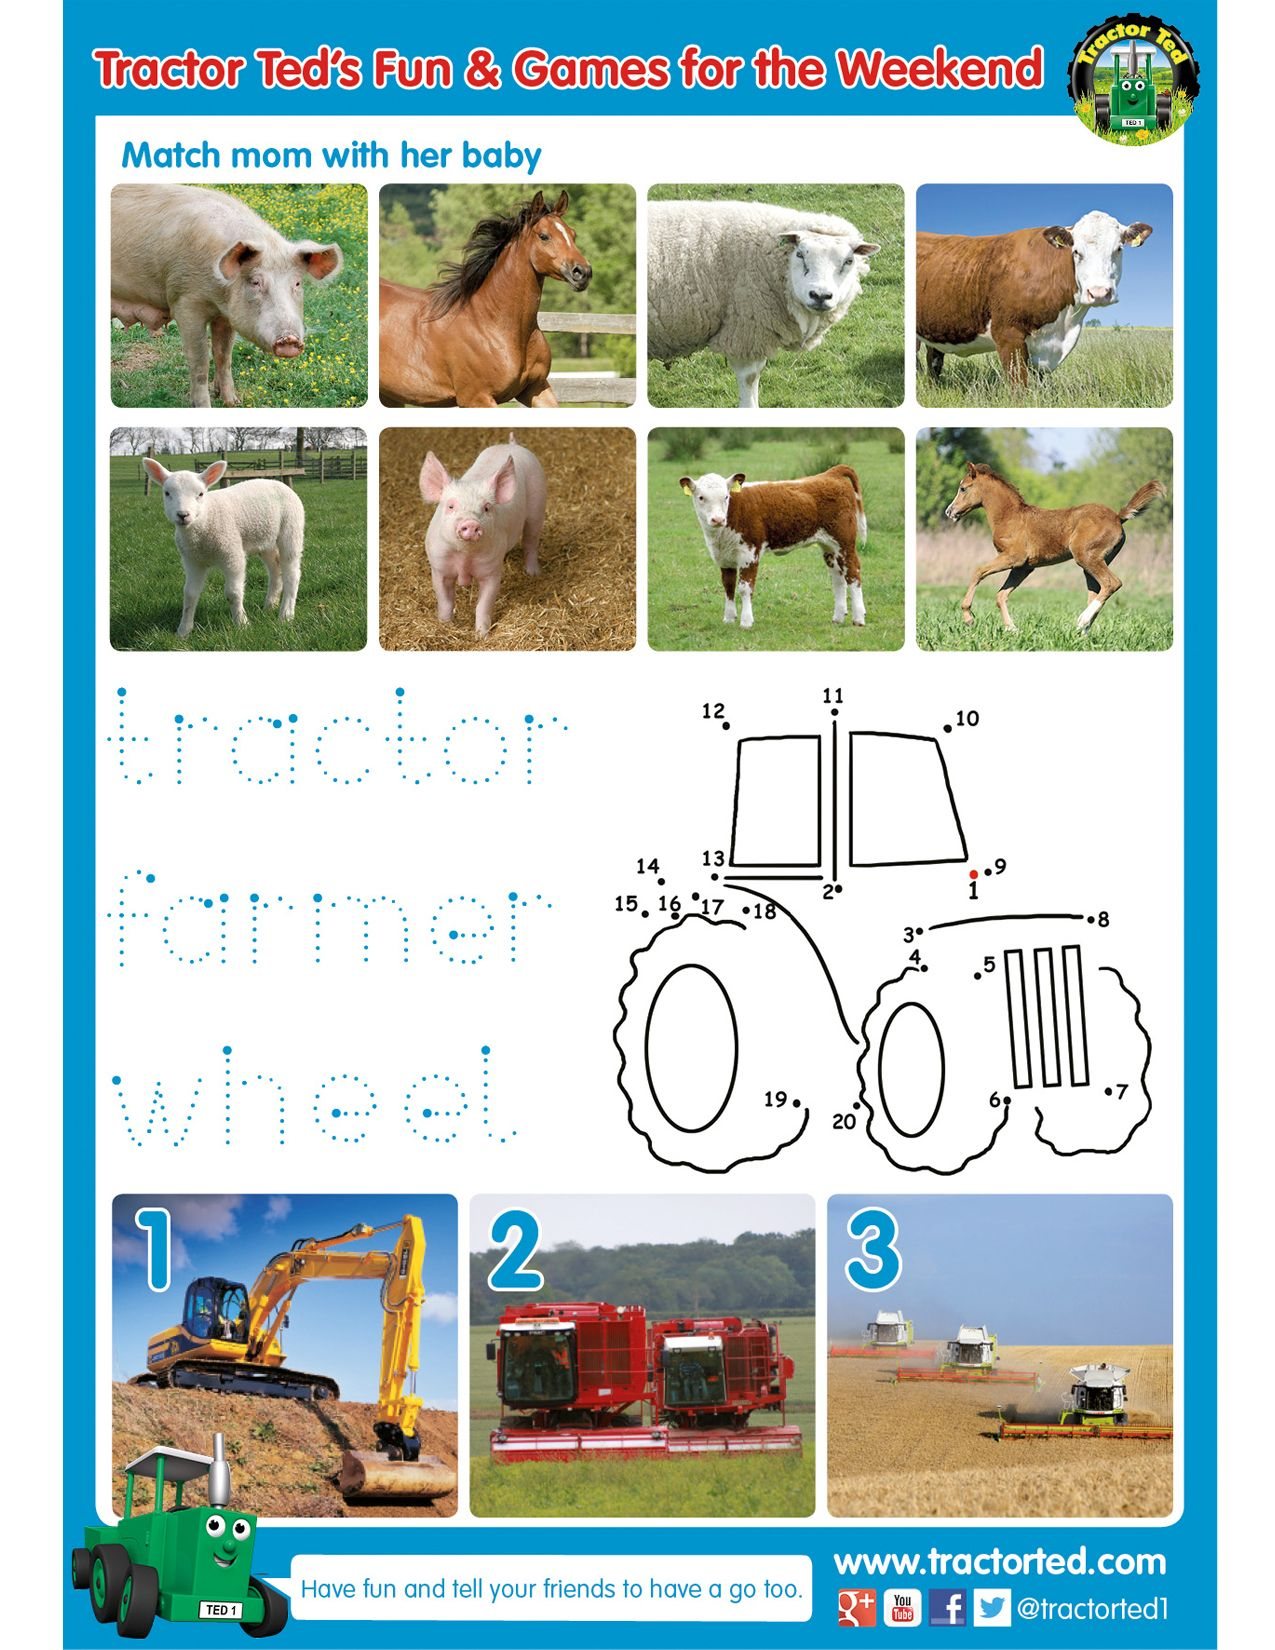 It S Friday Fun Day So Here S Another Free Printable Activity Sheet For Your Tractor And Farm